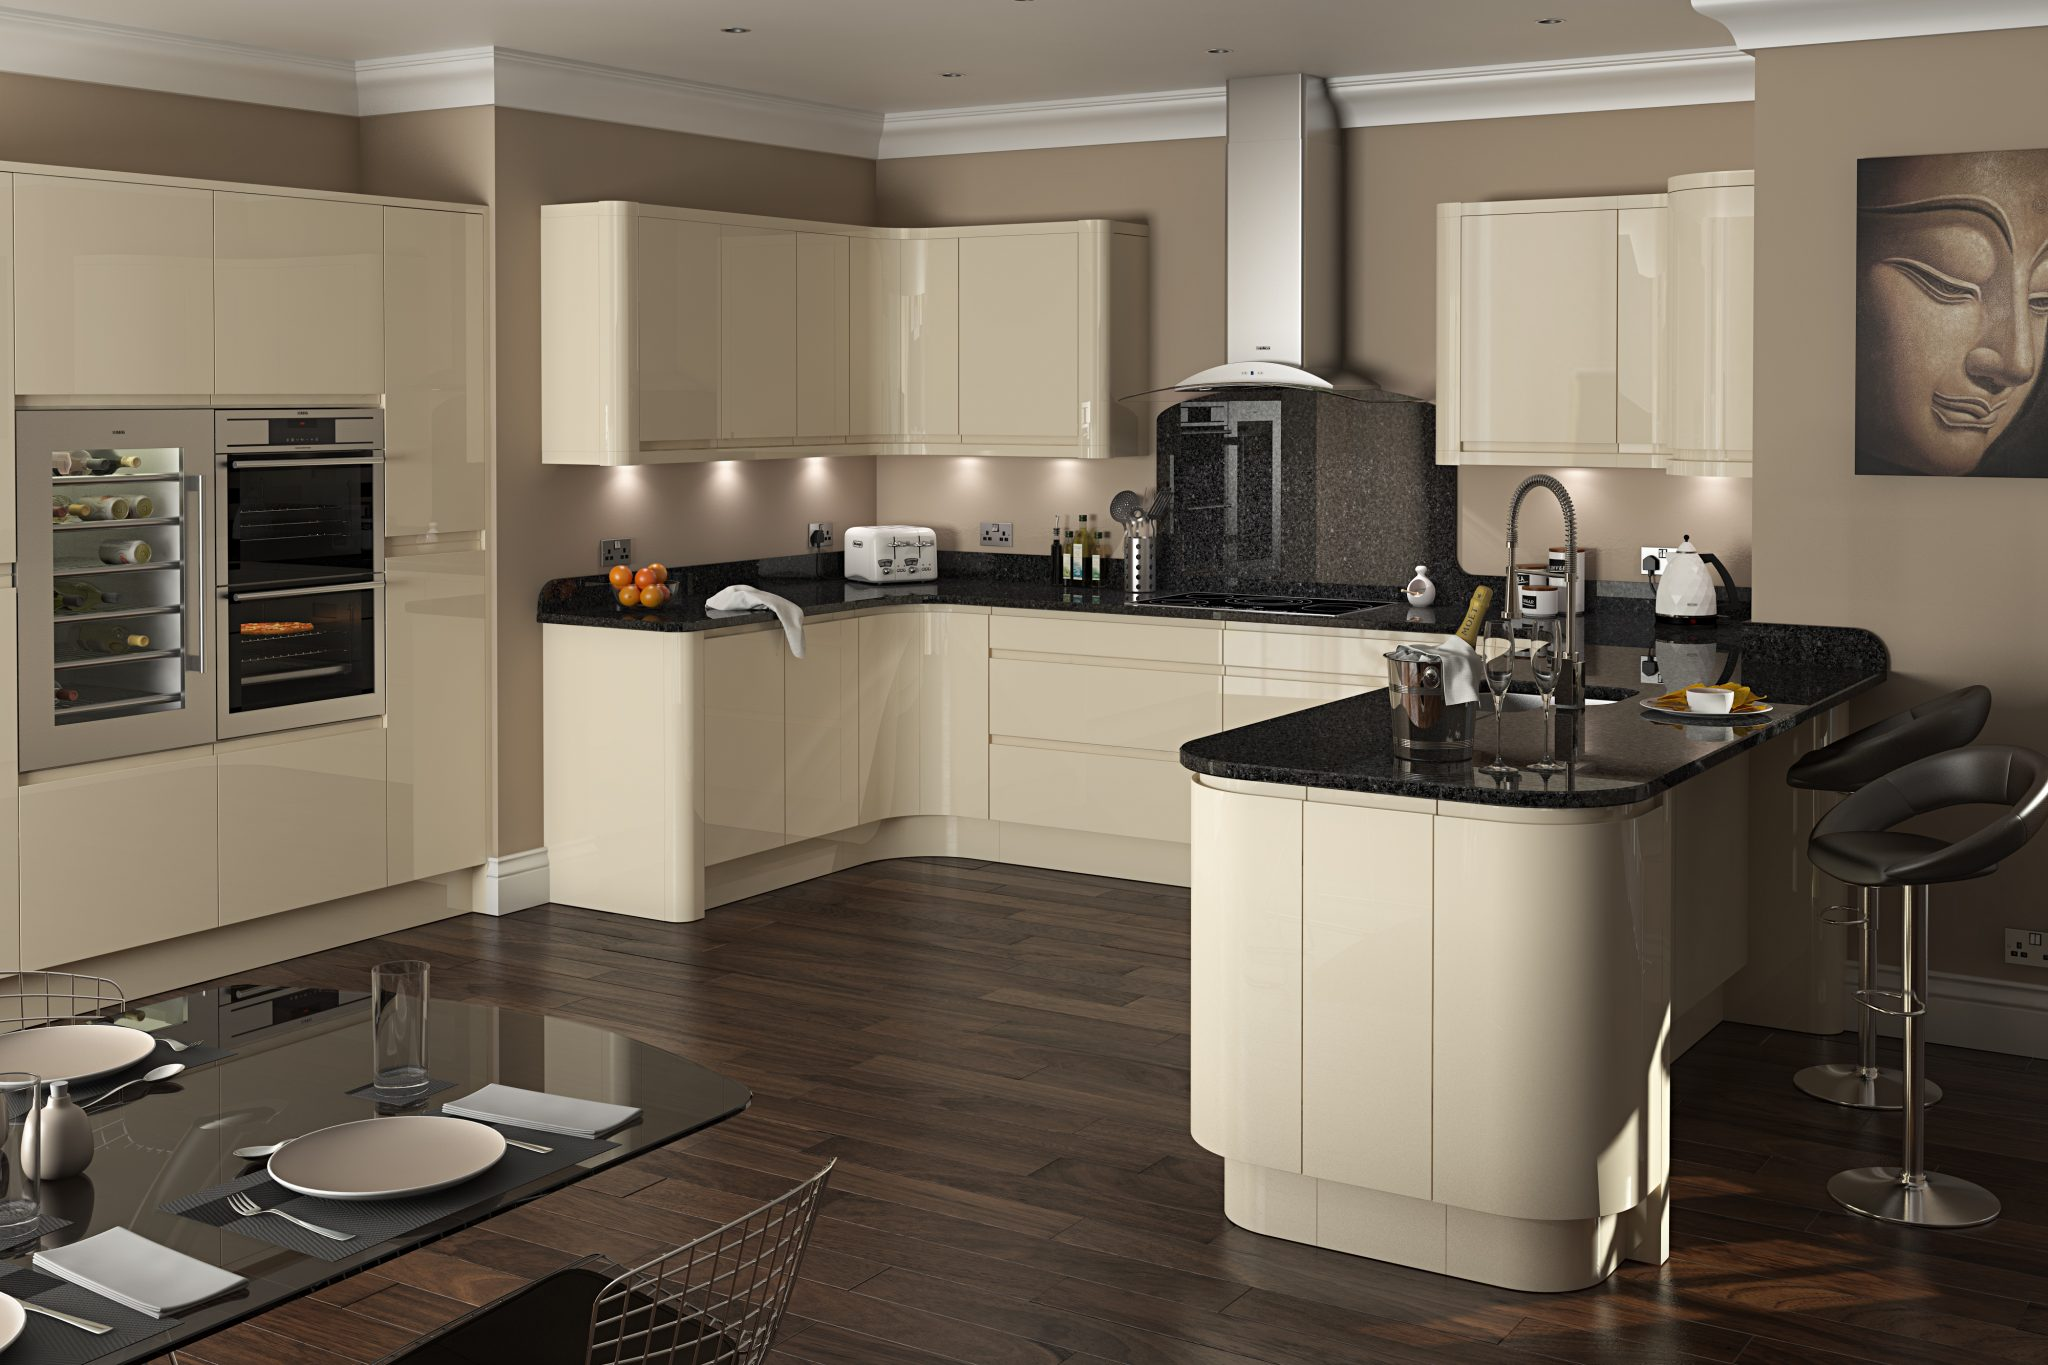 Kitchen design kitchens wirral bespoke luxury designs for Kitchen remodel photos